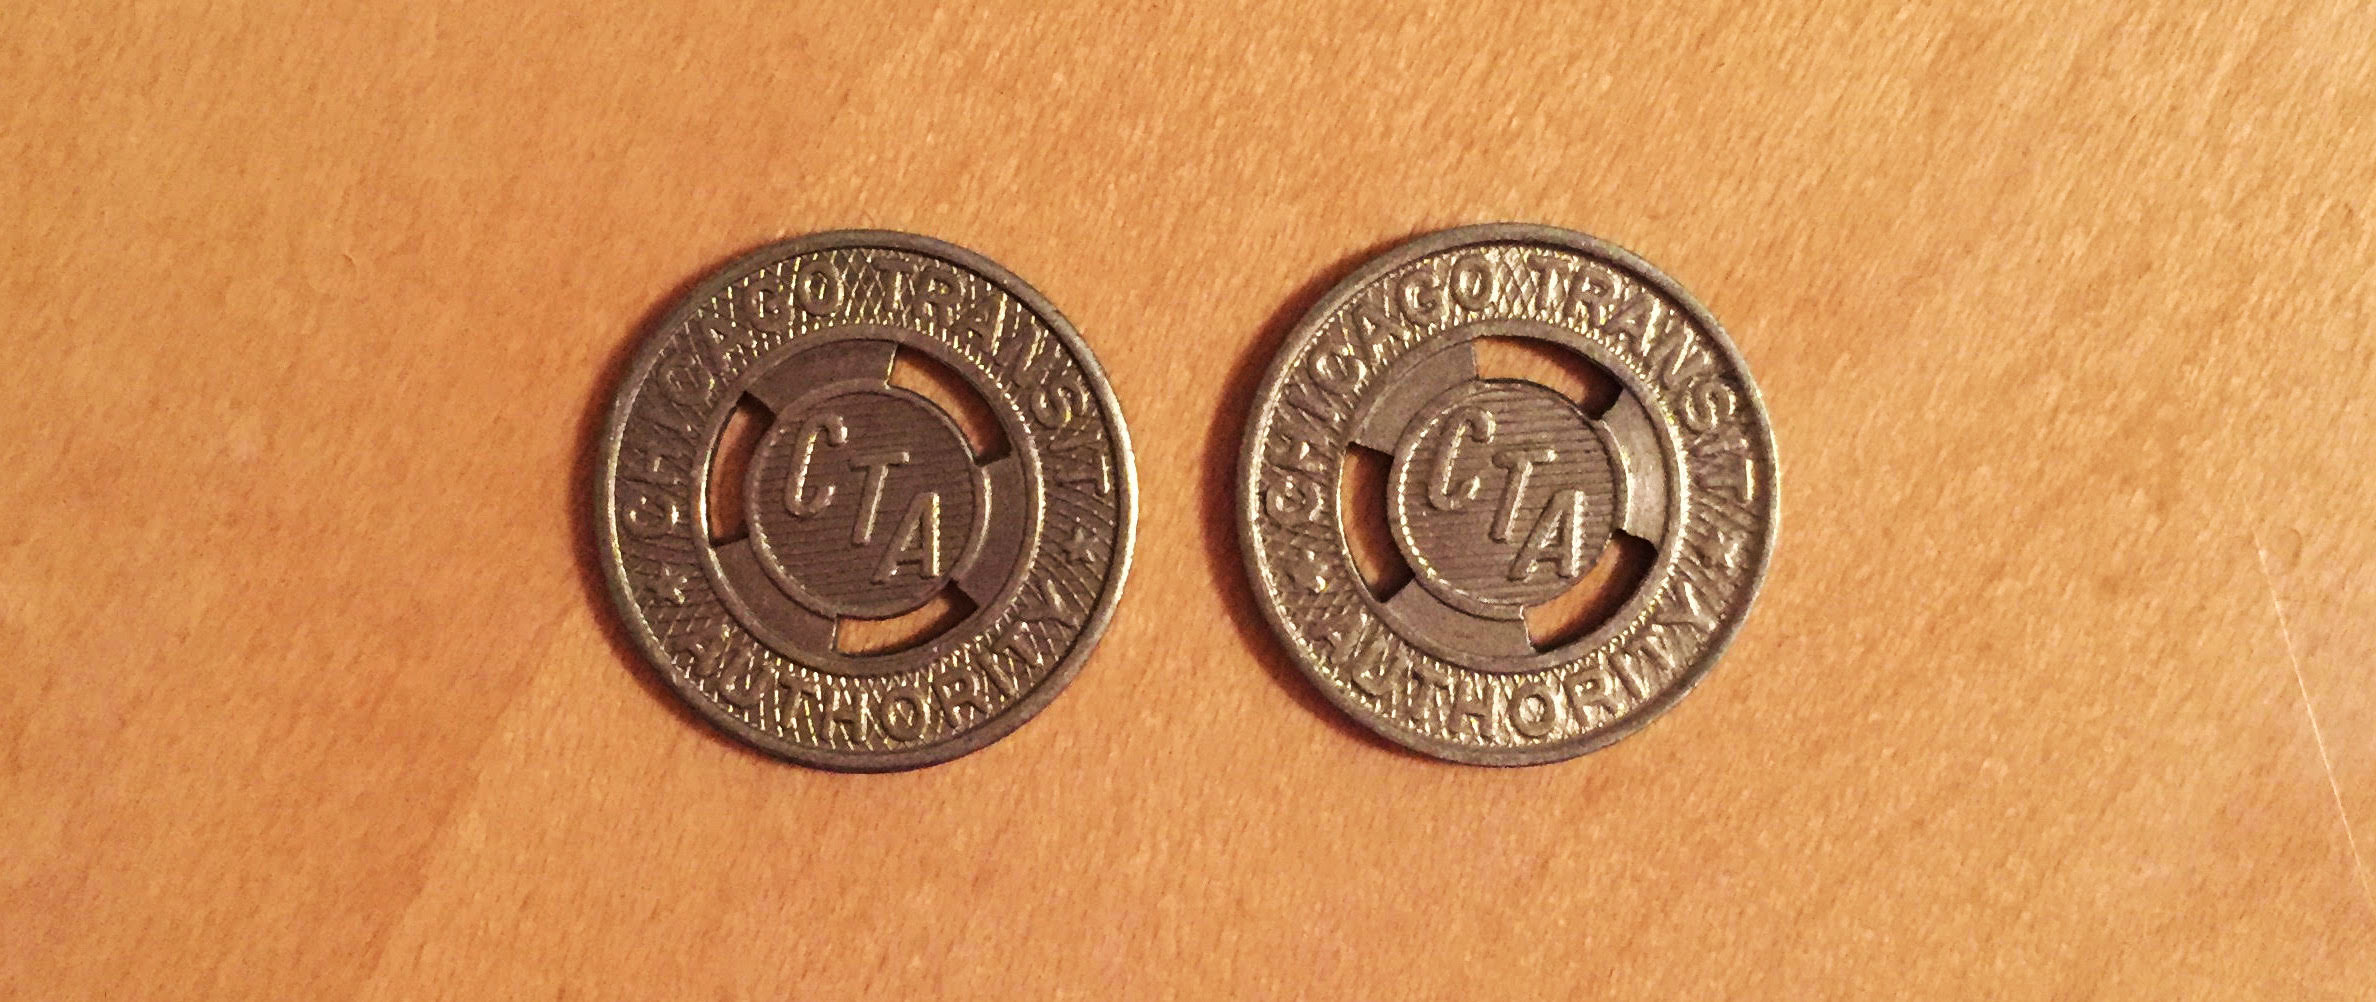 Two brass CTA tokens, sent to questioner Sadie by her mother, prompted her to ask Curious City about the history of the now-obsolete transit fare. (Courtesy Sadie Teper)